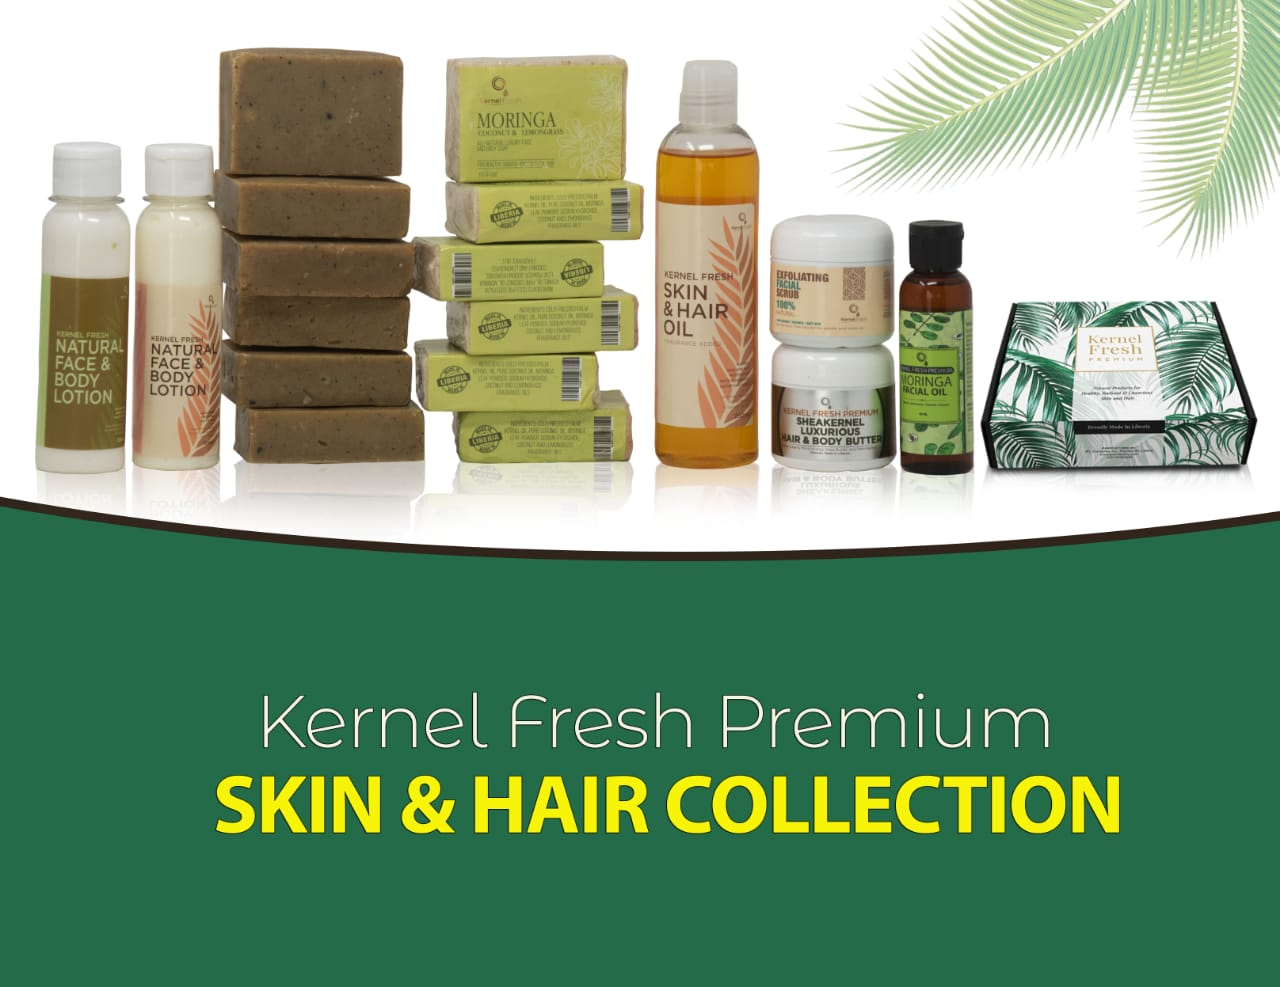 Kernel Fresh Premium Skin & Hair Collection